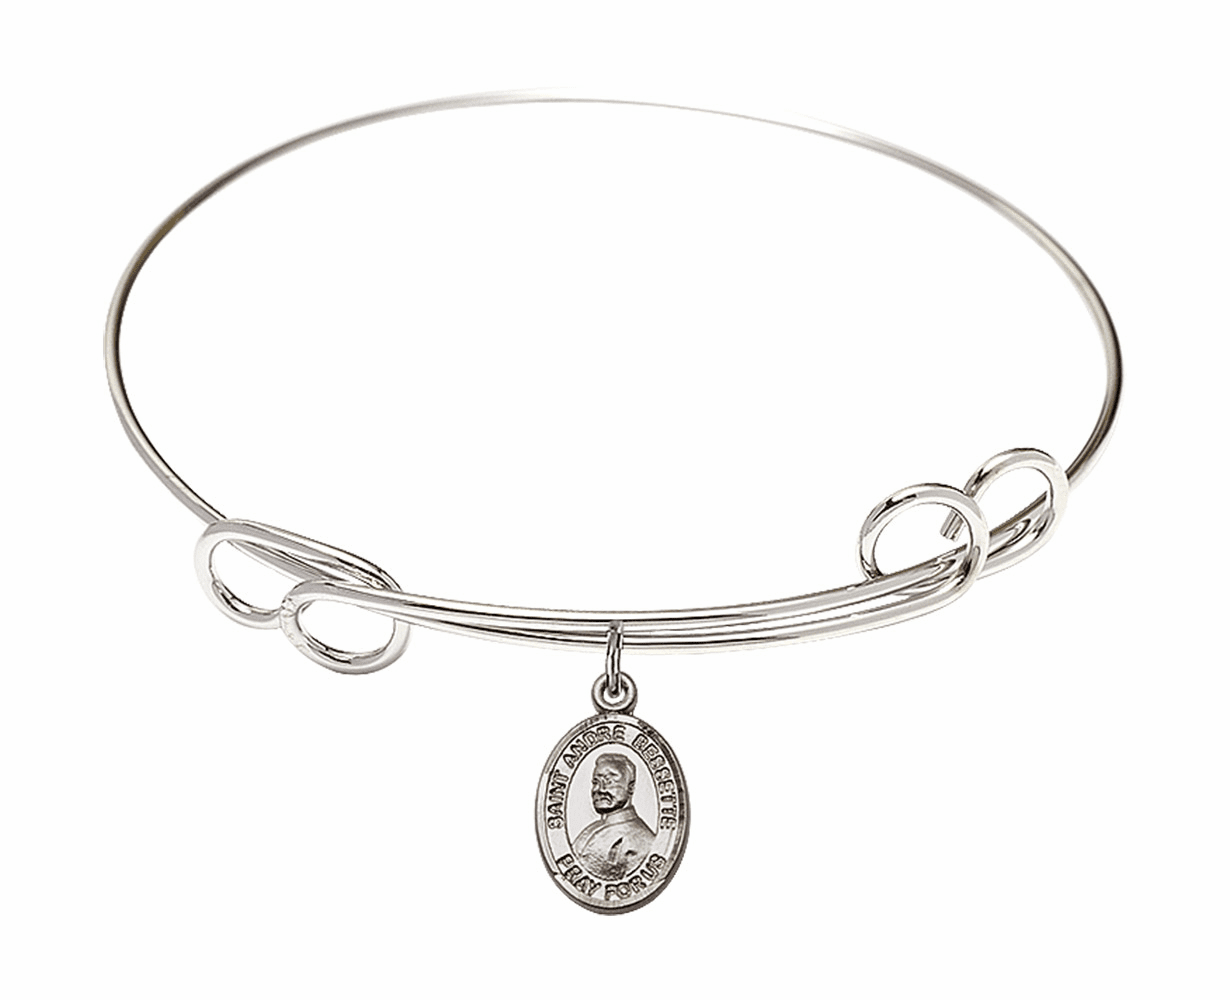 Round Loop St Andre Bessette Bangle Charm Bracelet by Bliss